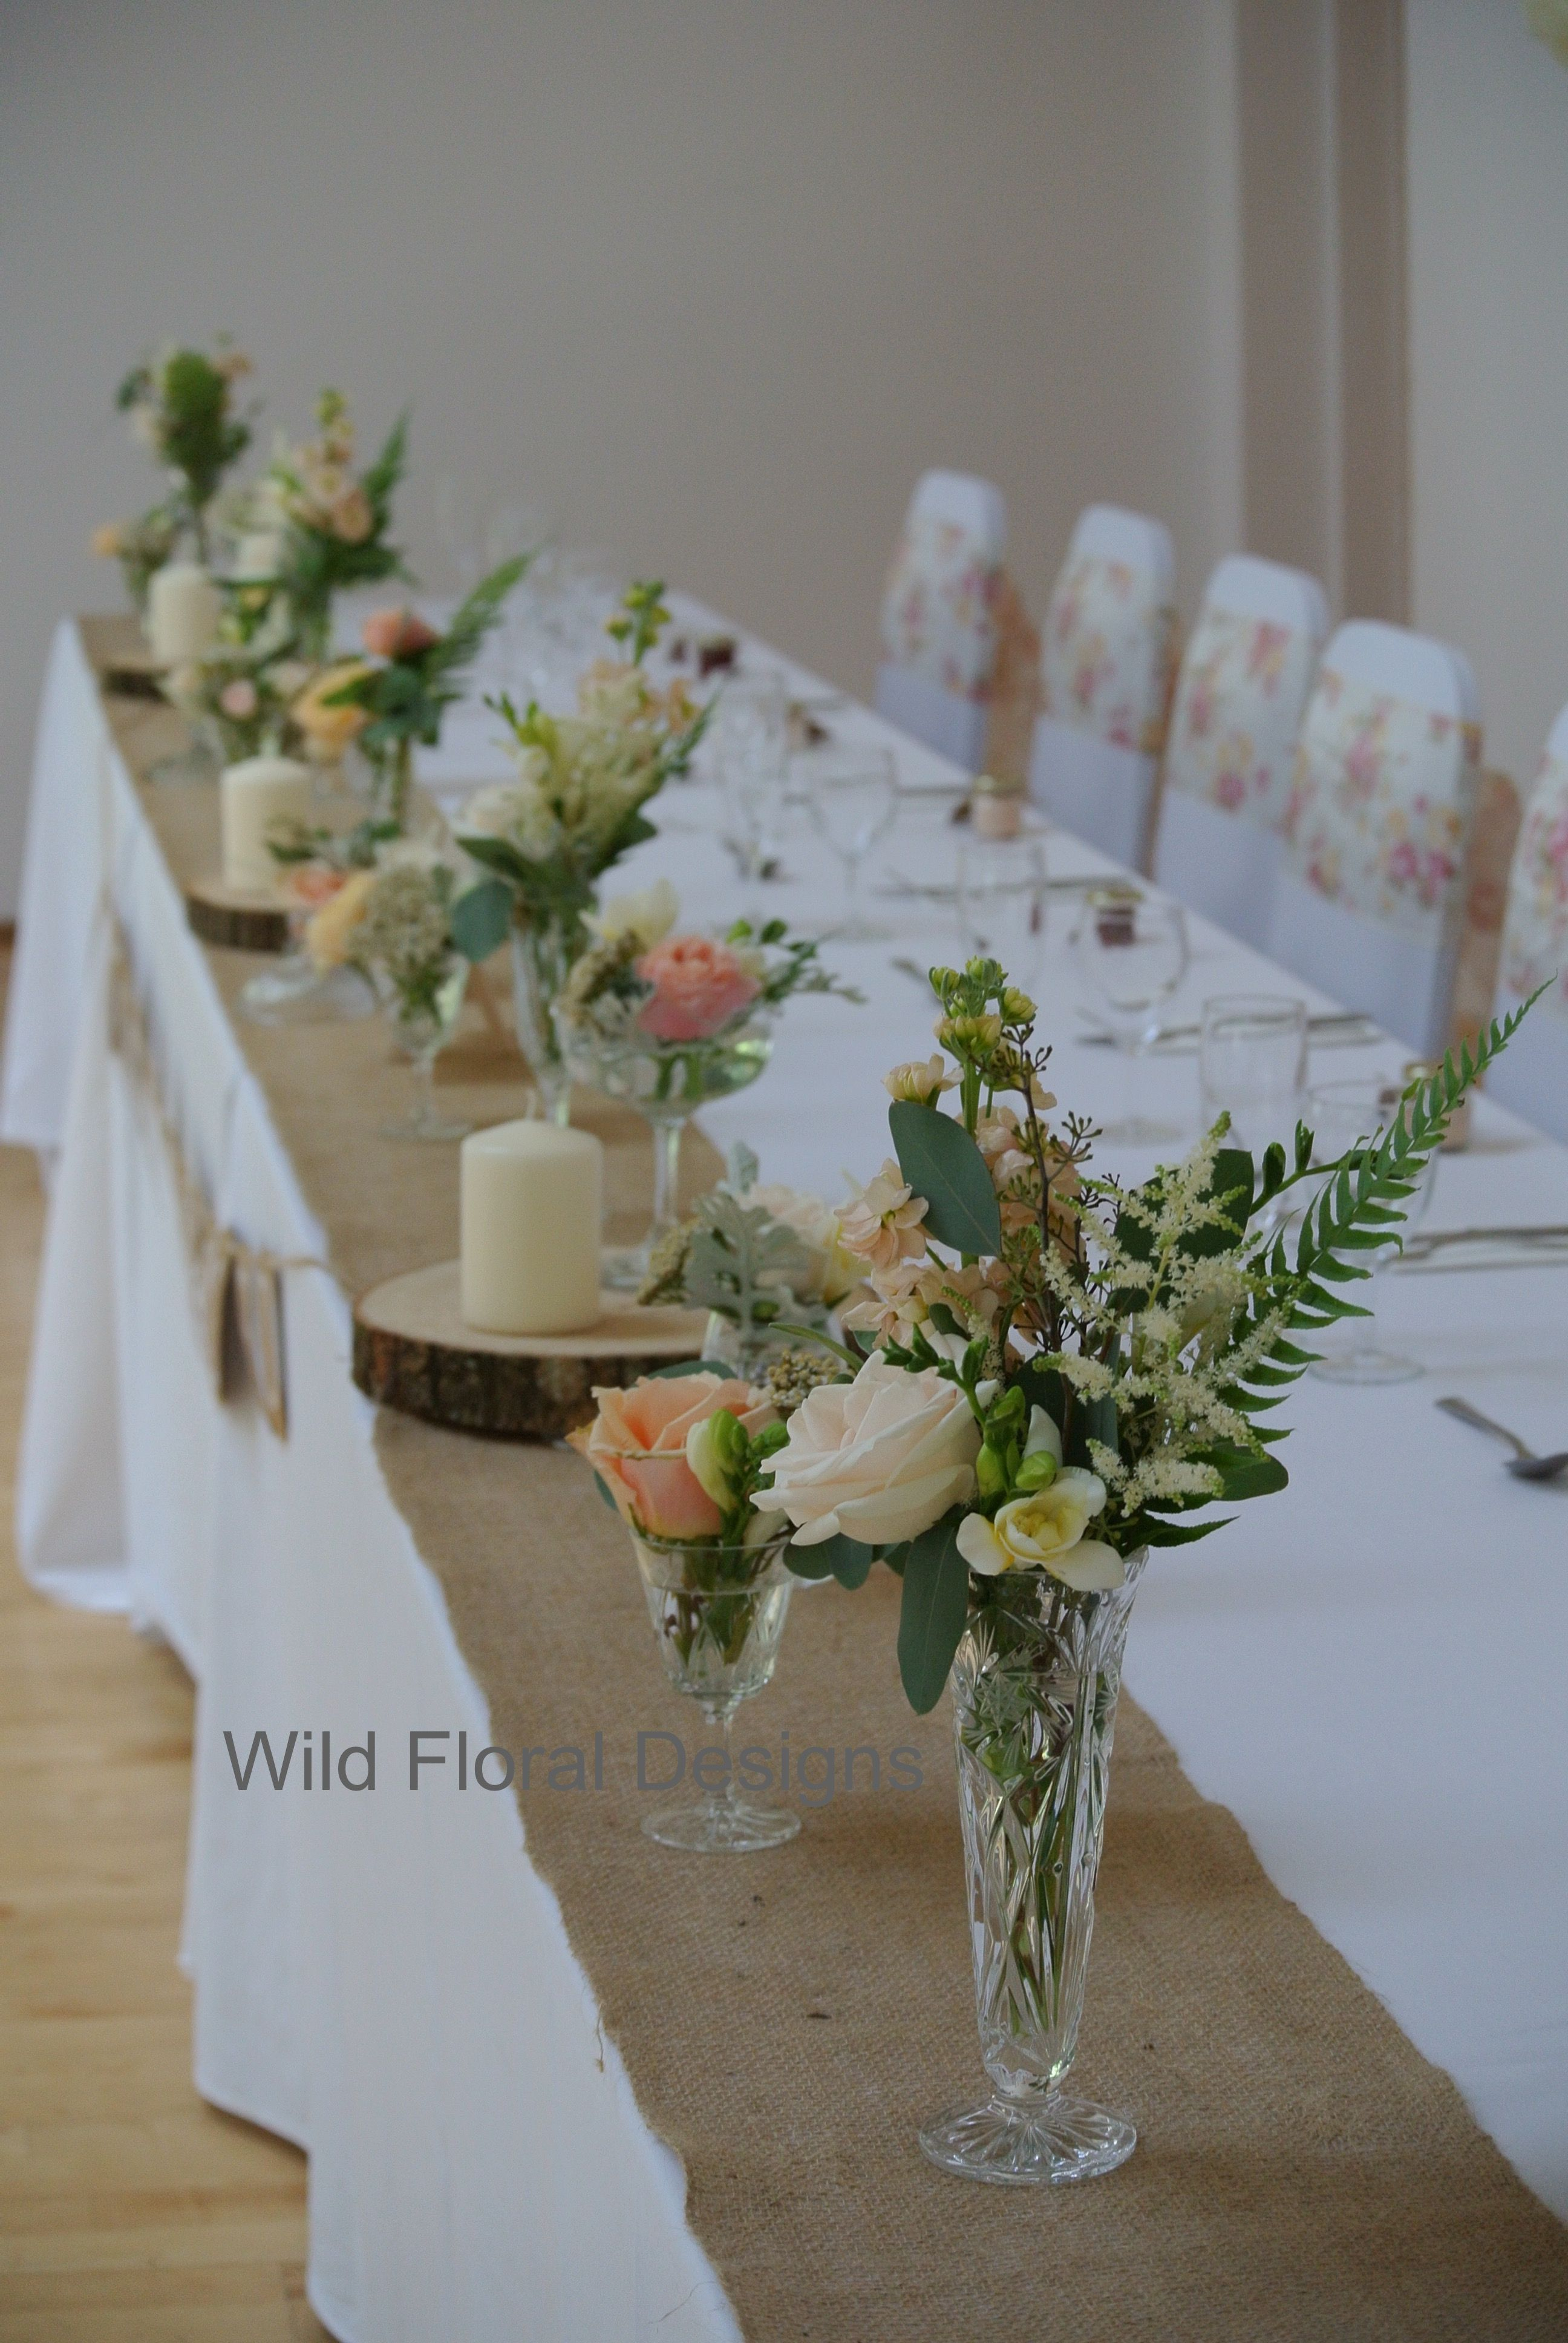 wedding chair covers devon church chairs with arms stokeinteignhead village hall sashes hessian table runners and floral designs supplied by wild